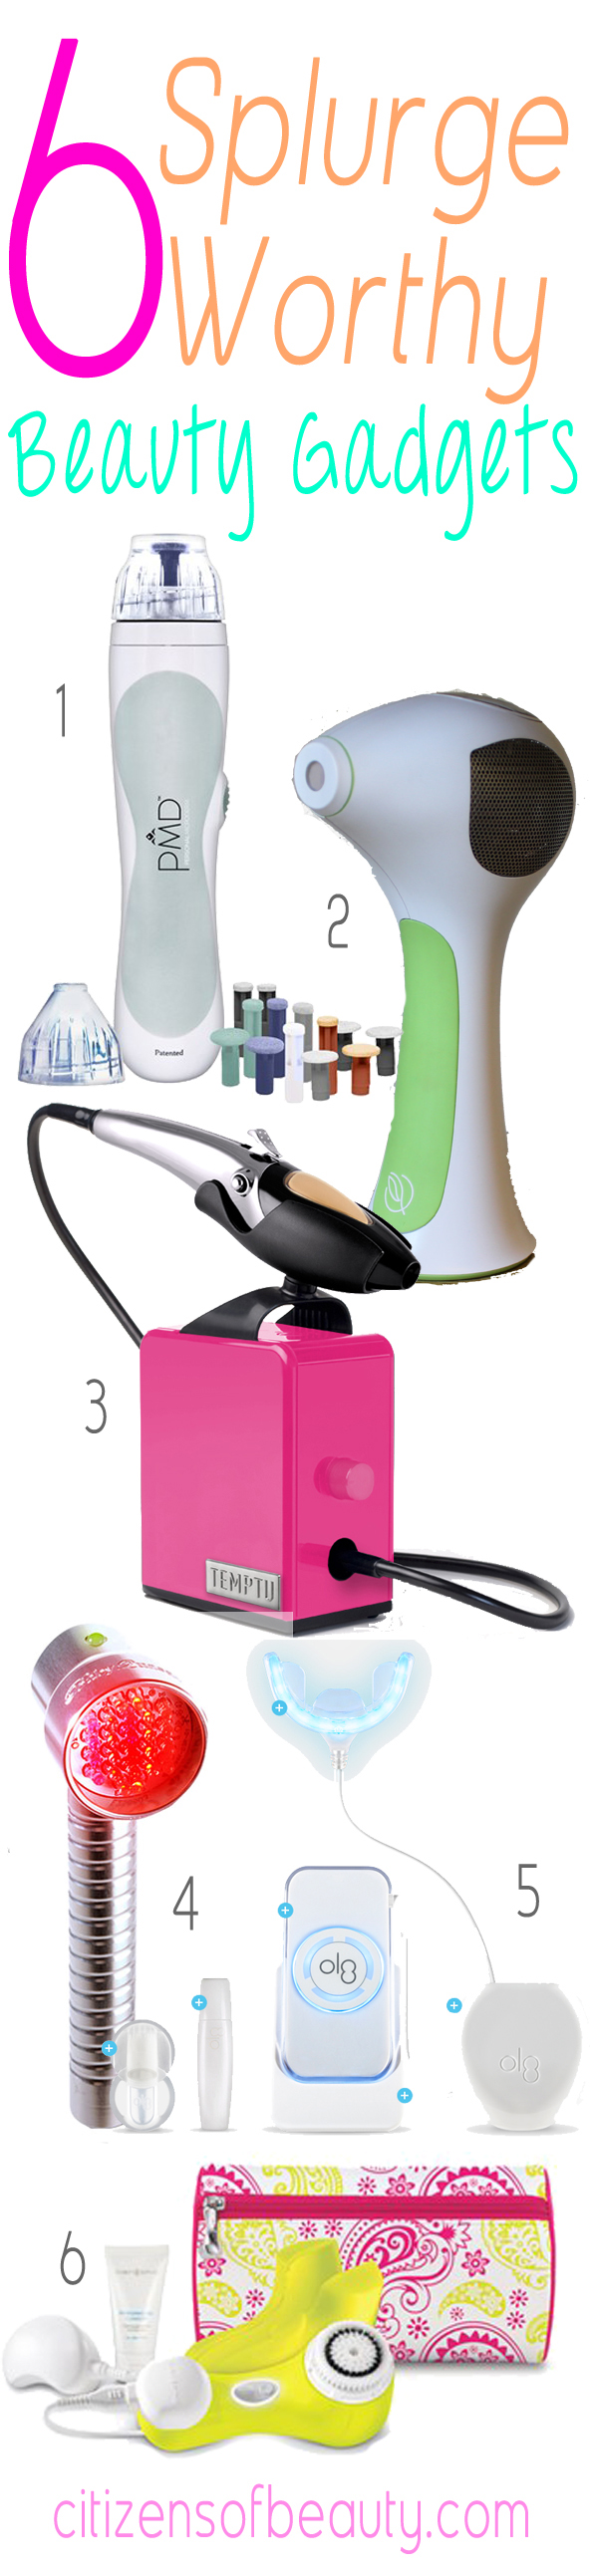 beauty gadgets